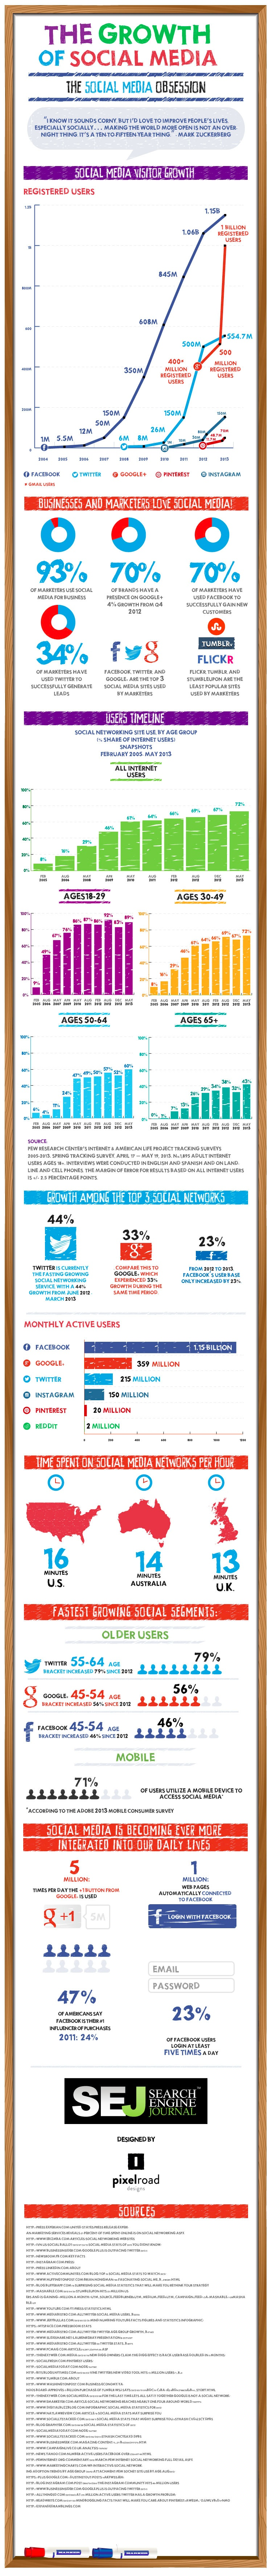 Social-Media-Facts-and-statistics-you-need-to-know-